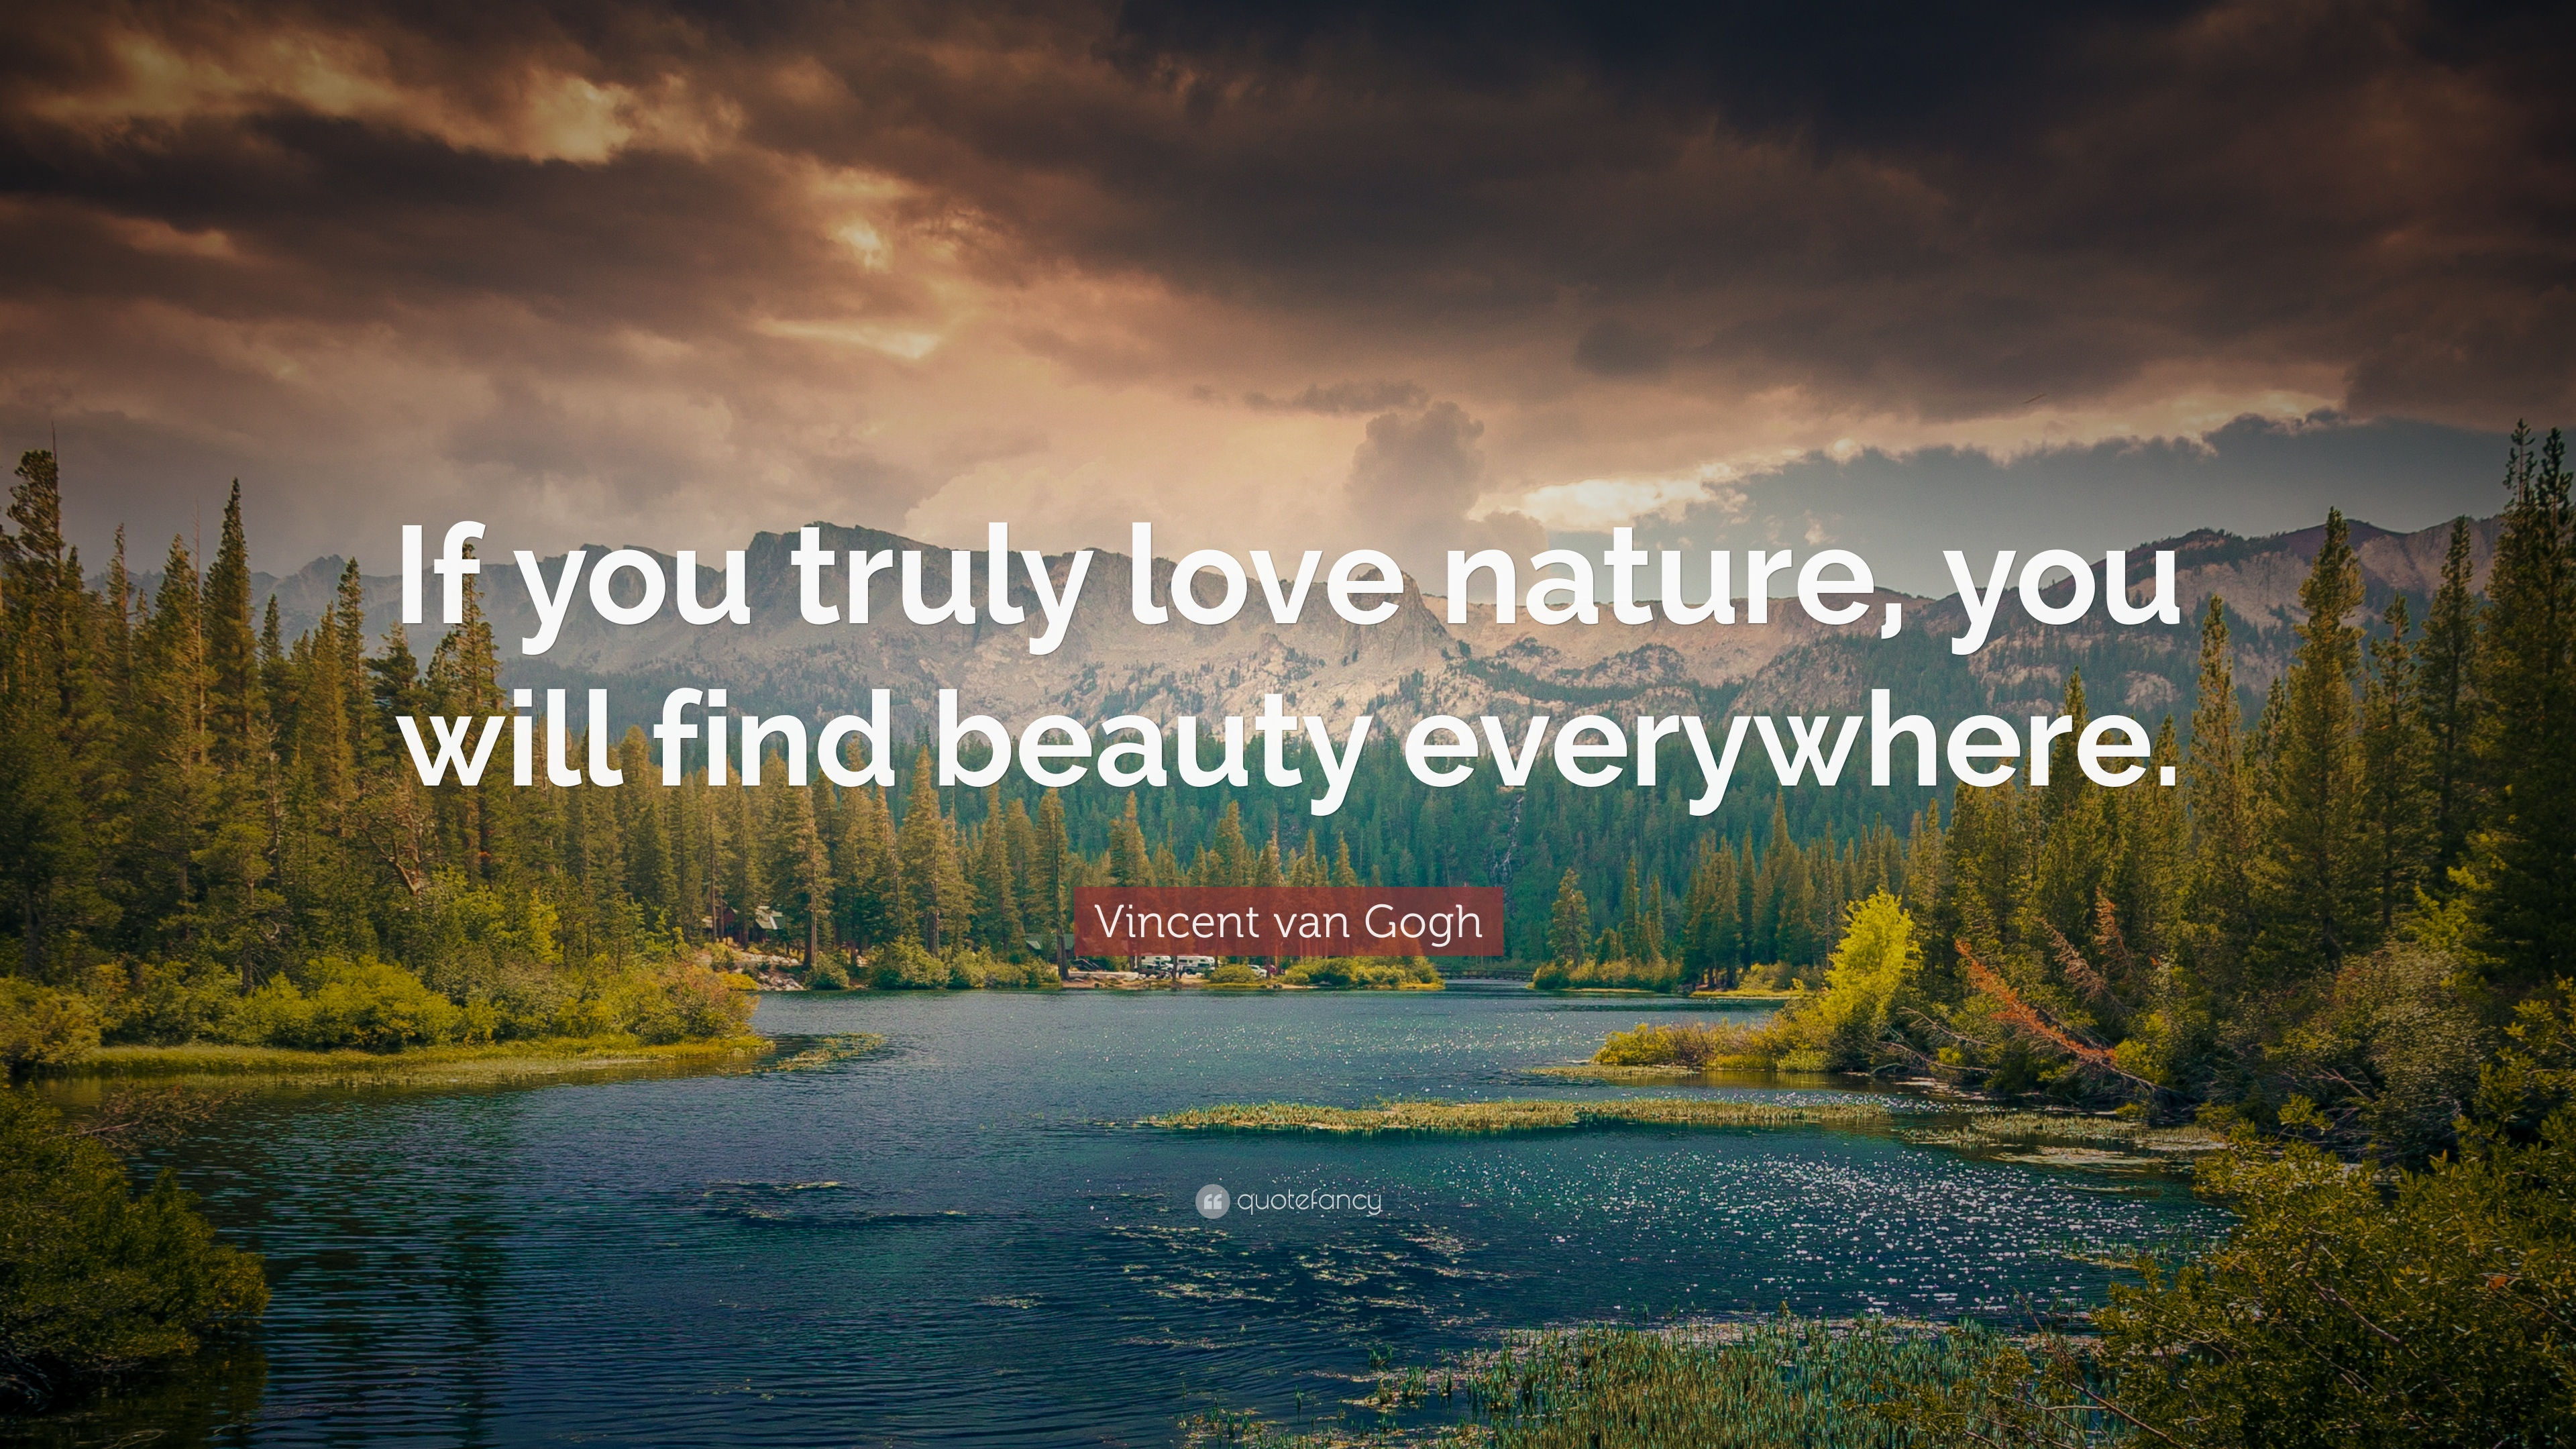 Nature quotes if you truly love nature you will find beauty everywhere